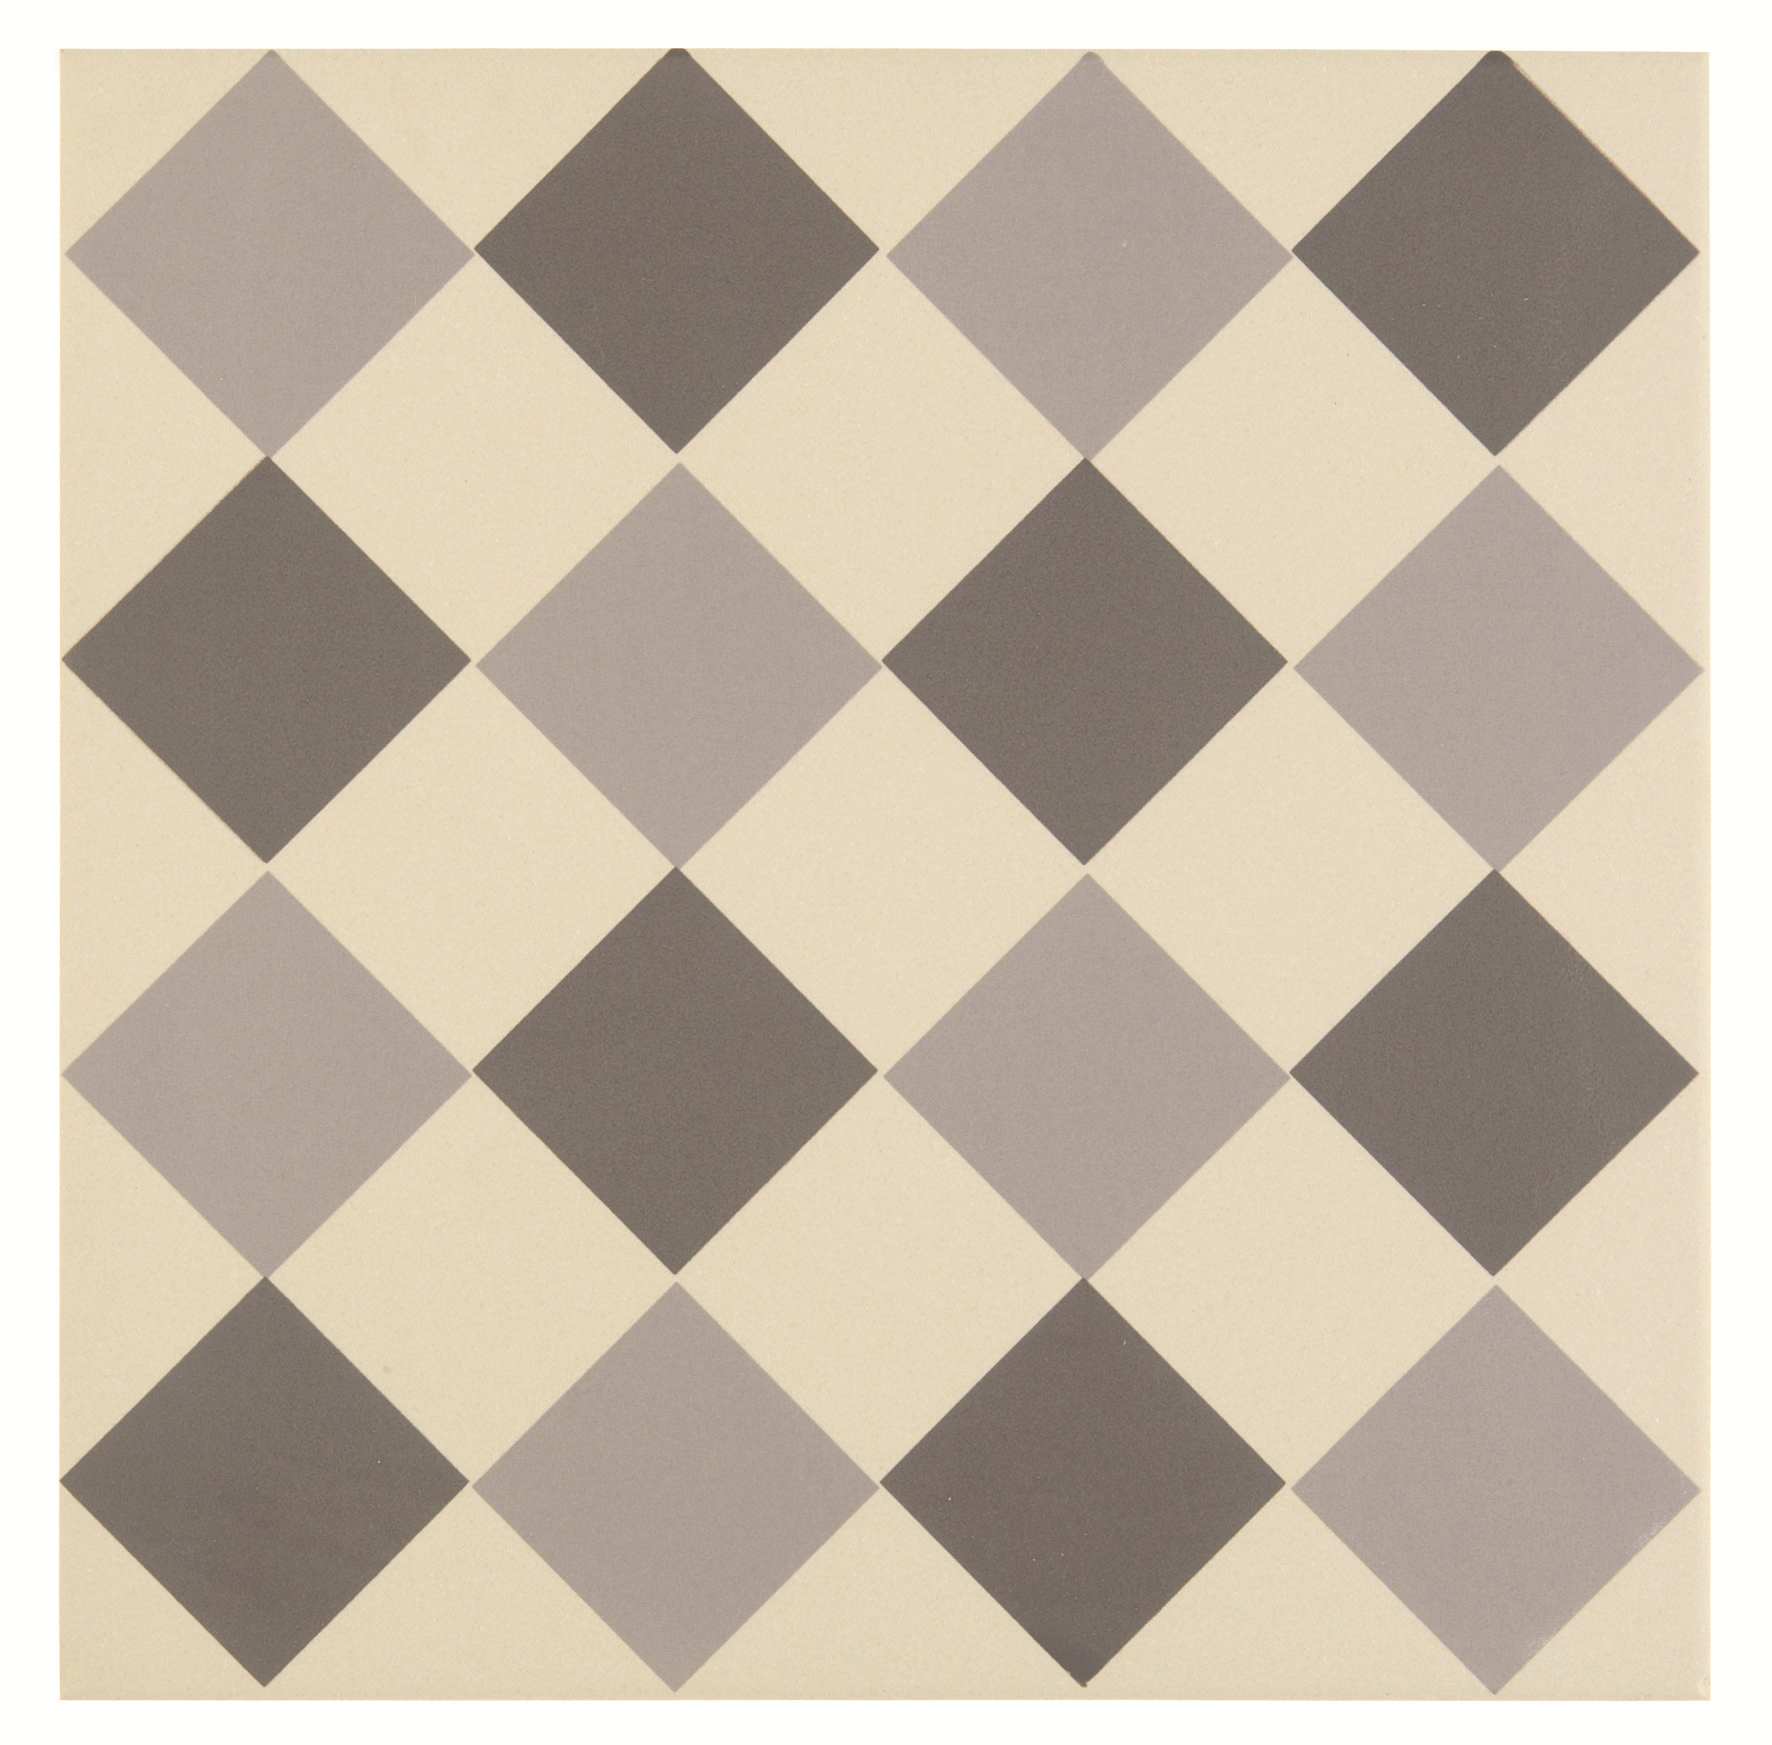 Harlequin Small Grey Ceramic Tile   Vct flooring, Fitness rooms and ...